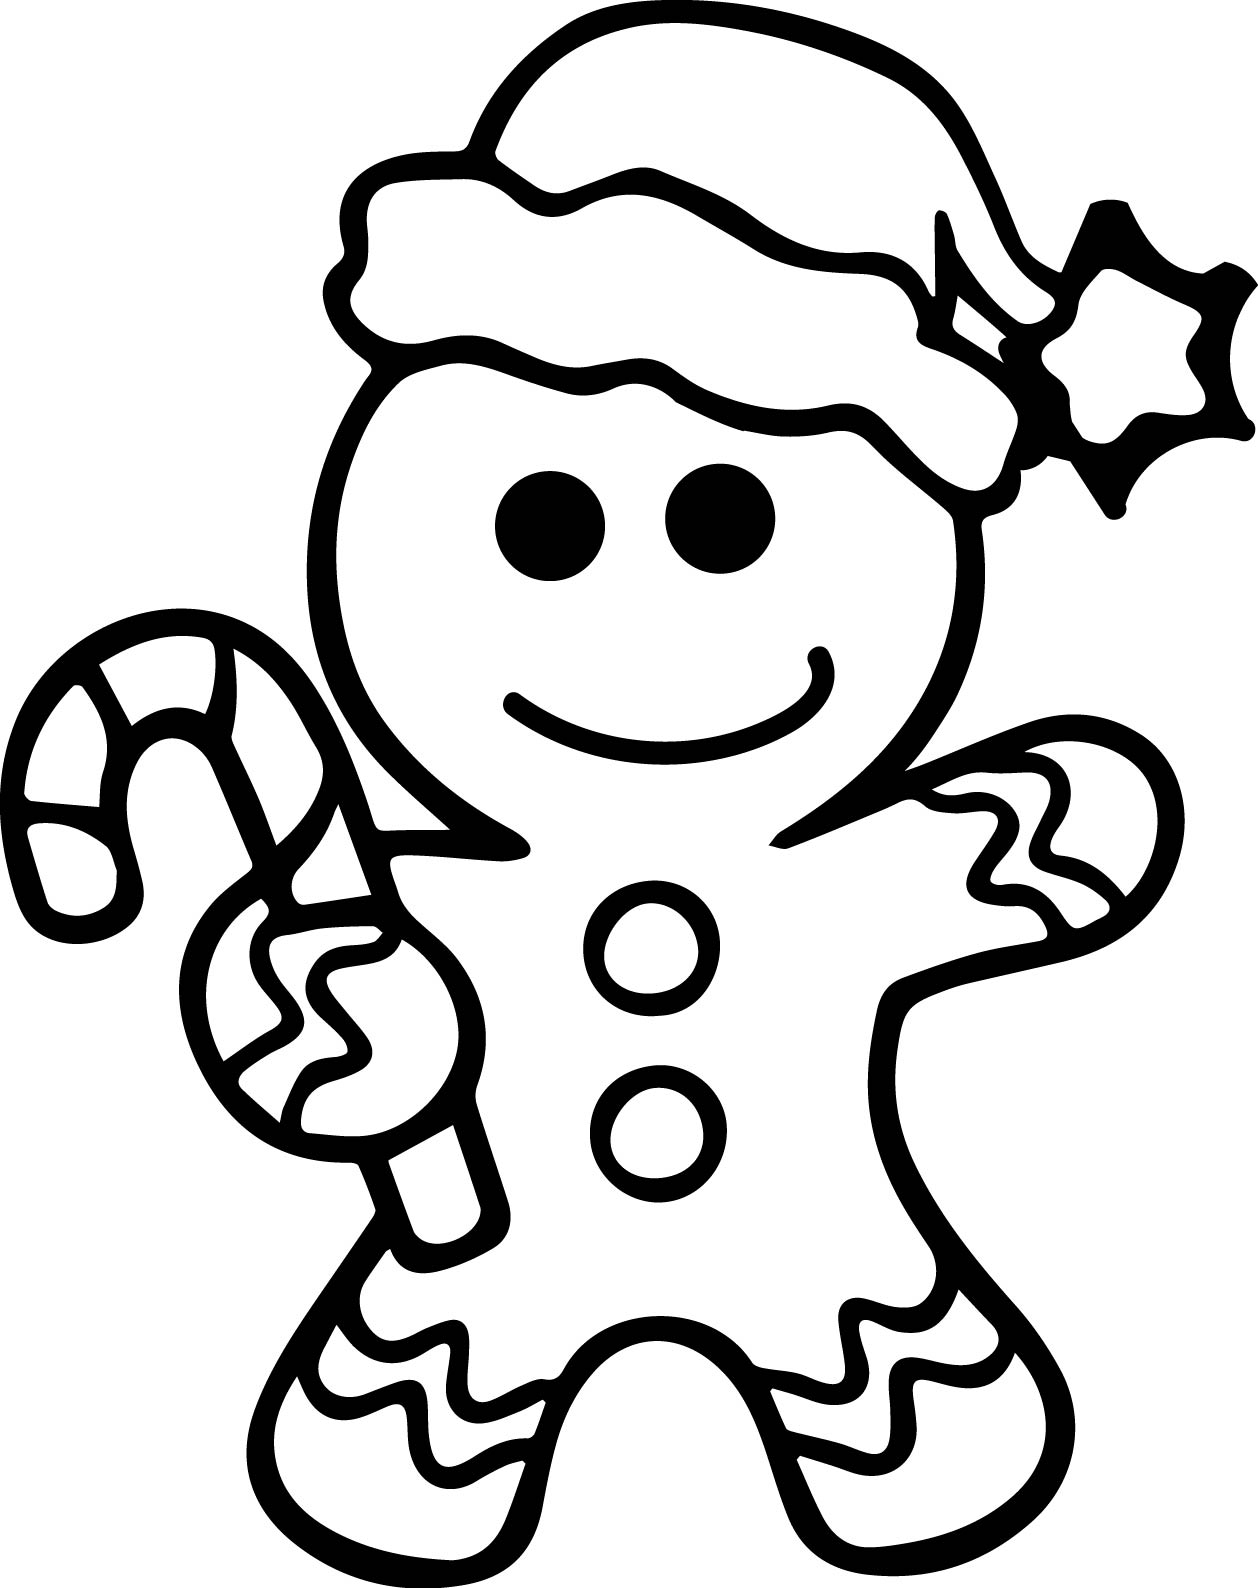 free printable gingerbread house coloring pages - gingerbread man coloring page